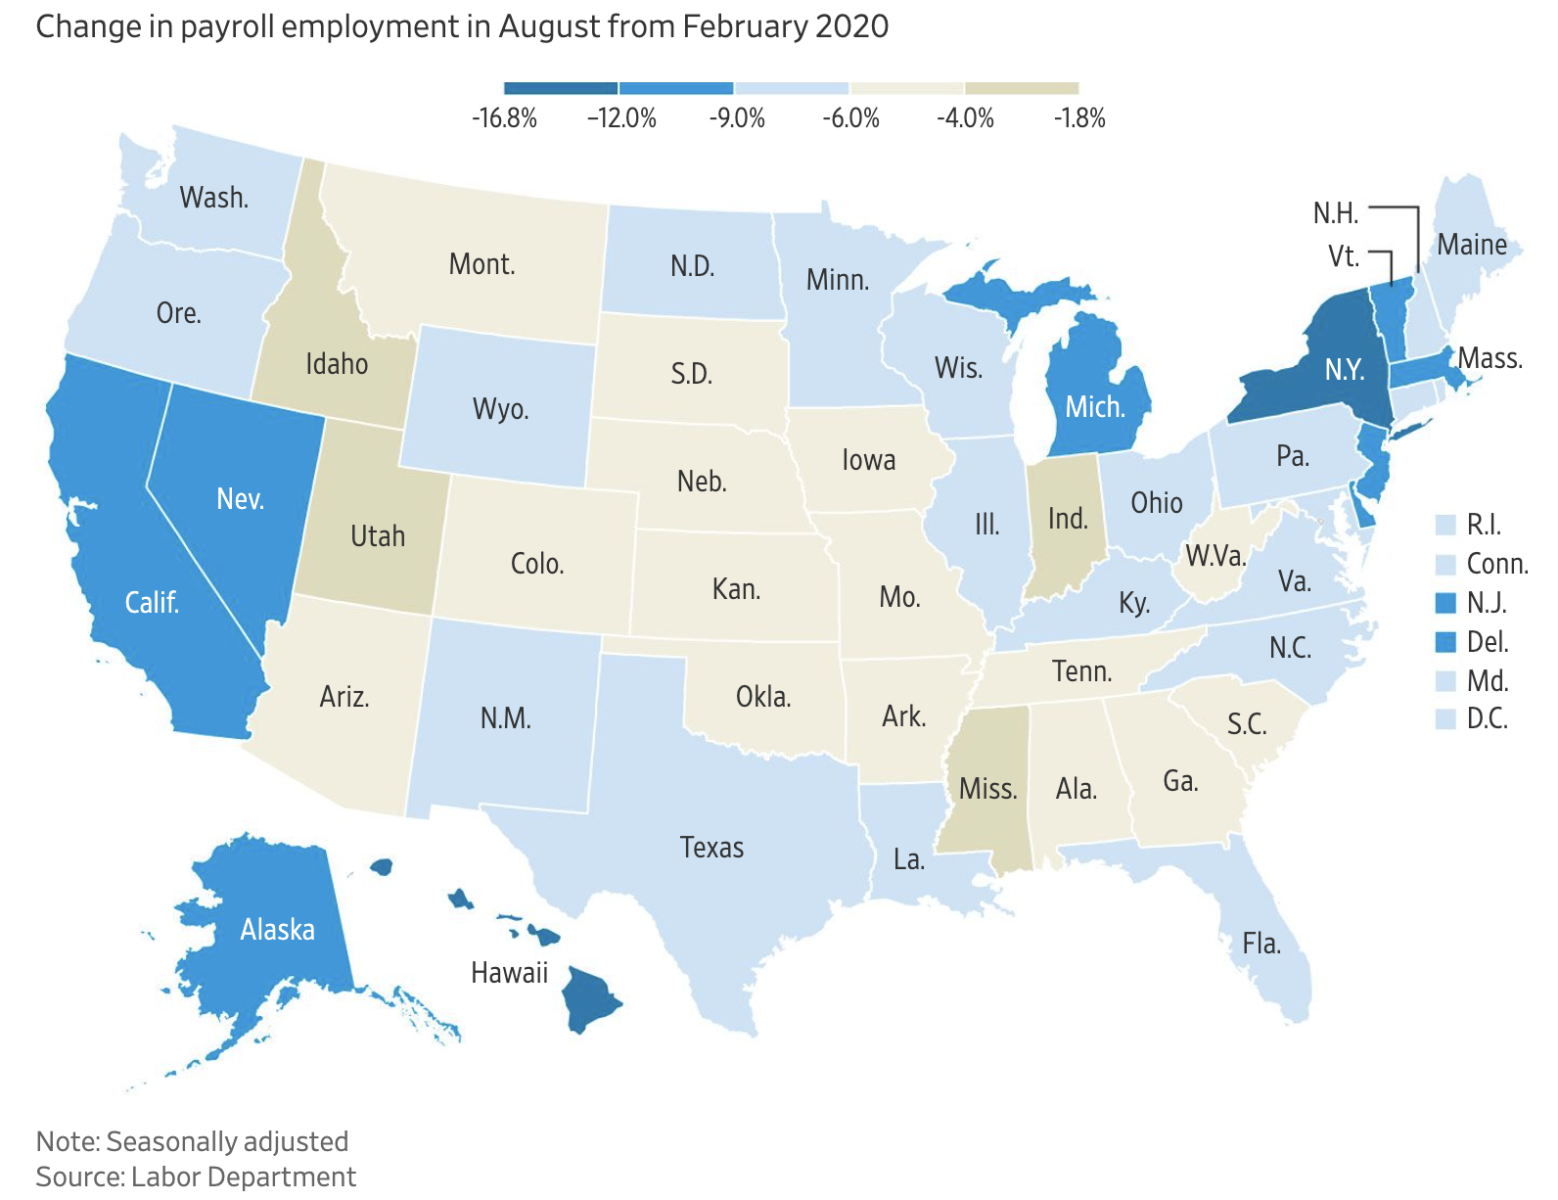 WSJ: Change in Payroll Employment in August from February 2020